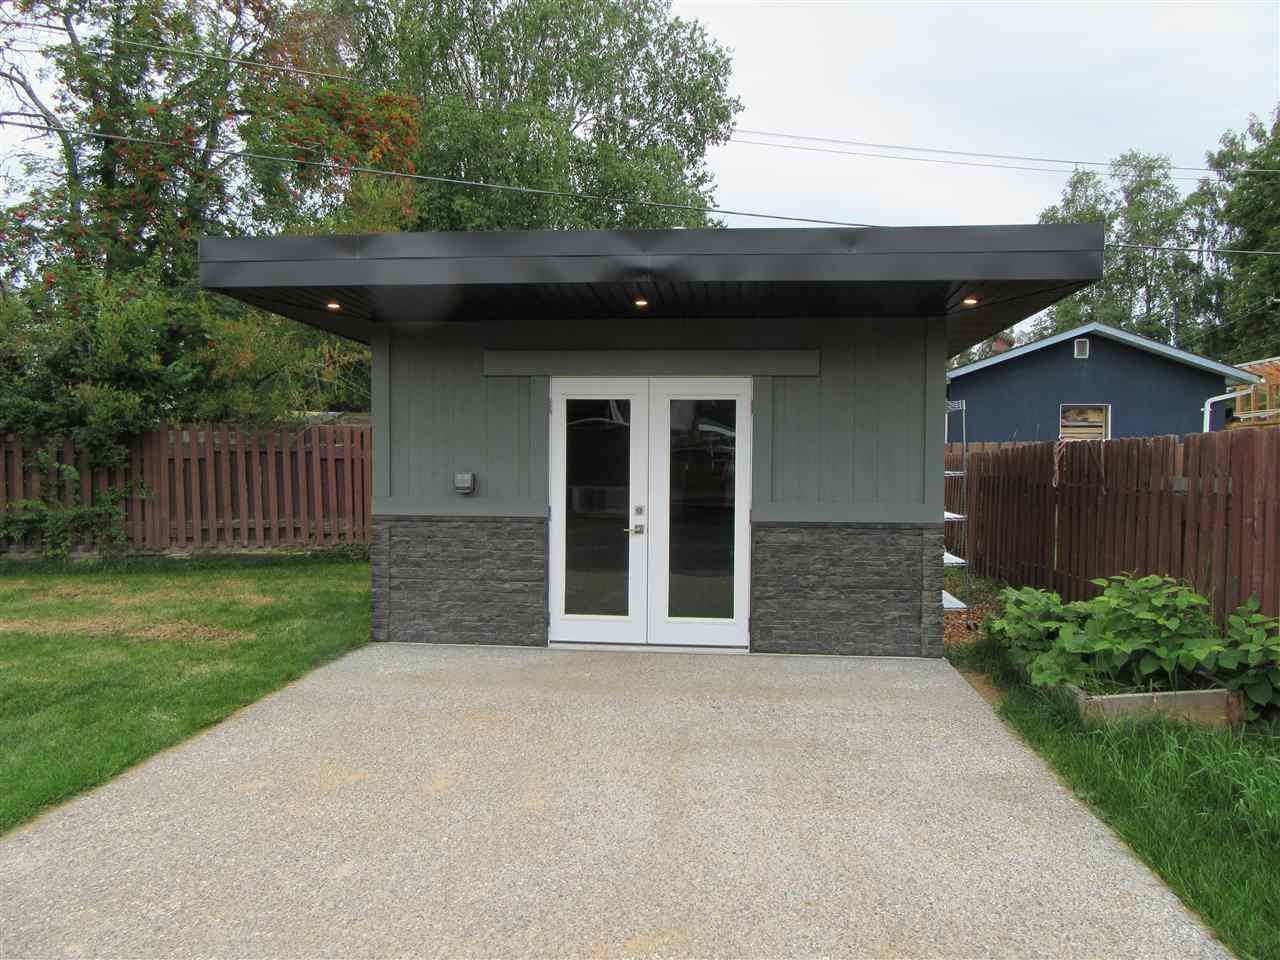 """Photo 6: Photos: 121 FREEMAN Street in Prince George: Nechako View House for sale in """"NECHAKO"""" (PG City Central (Zone 72))  : MLS®# R2493268"""